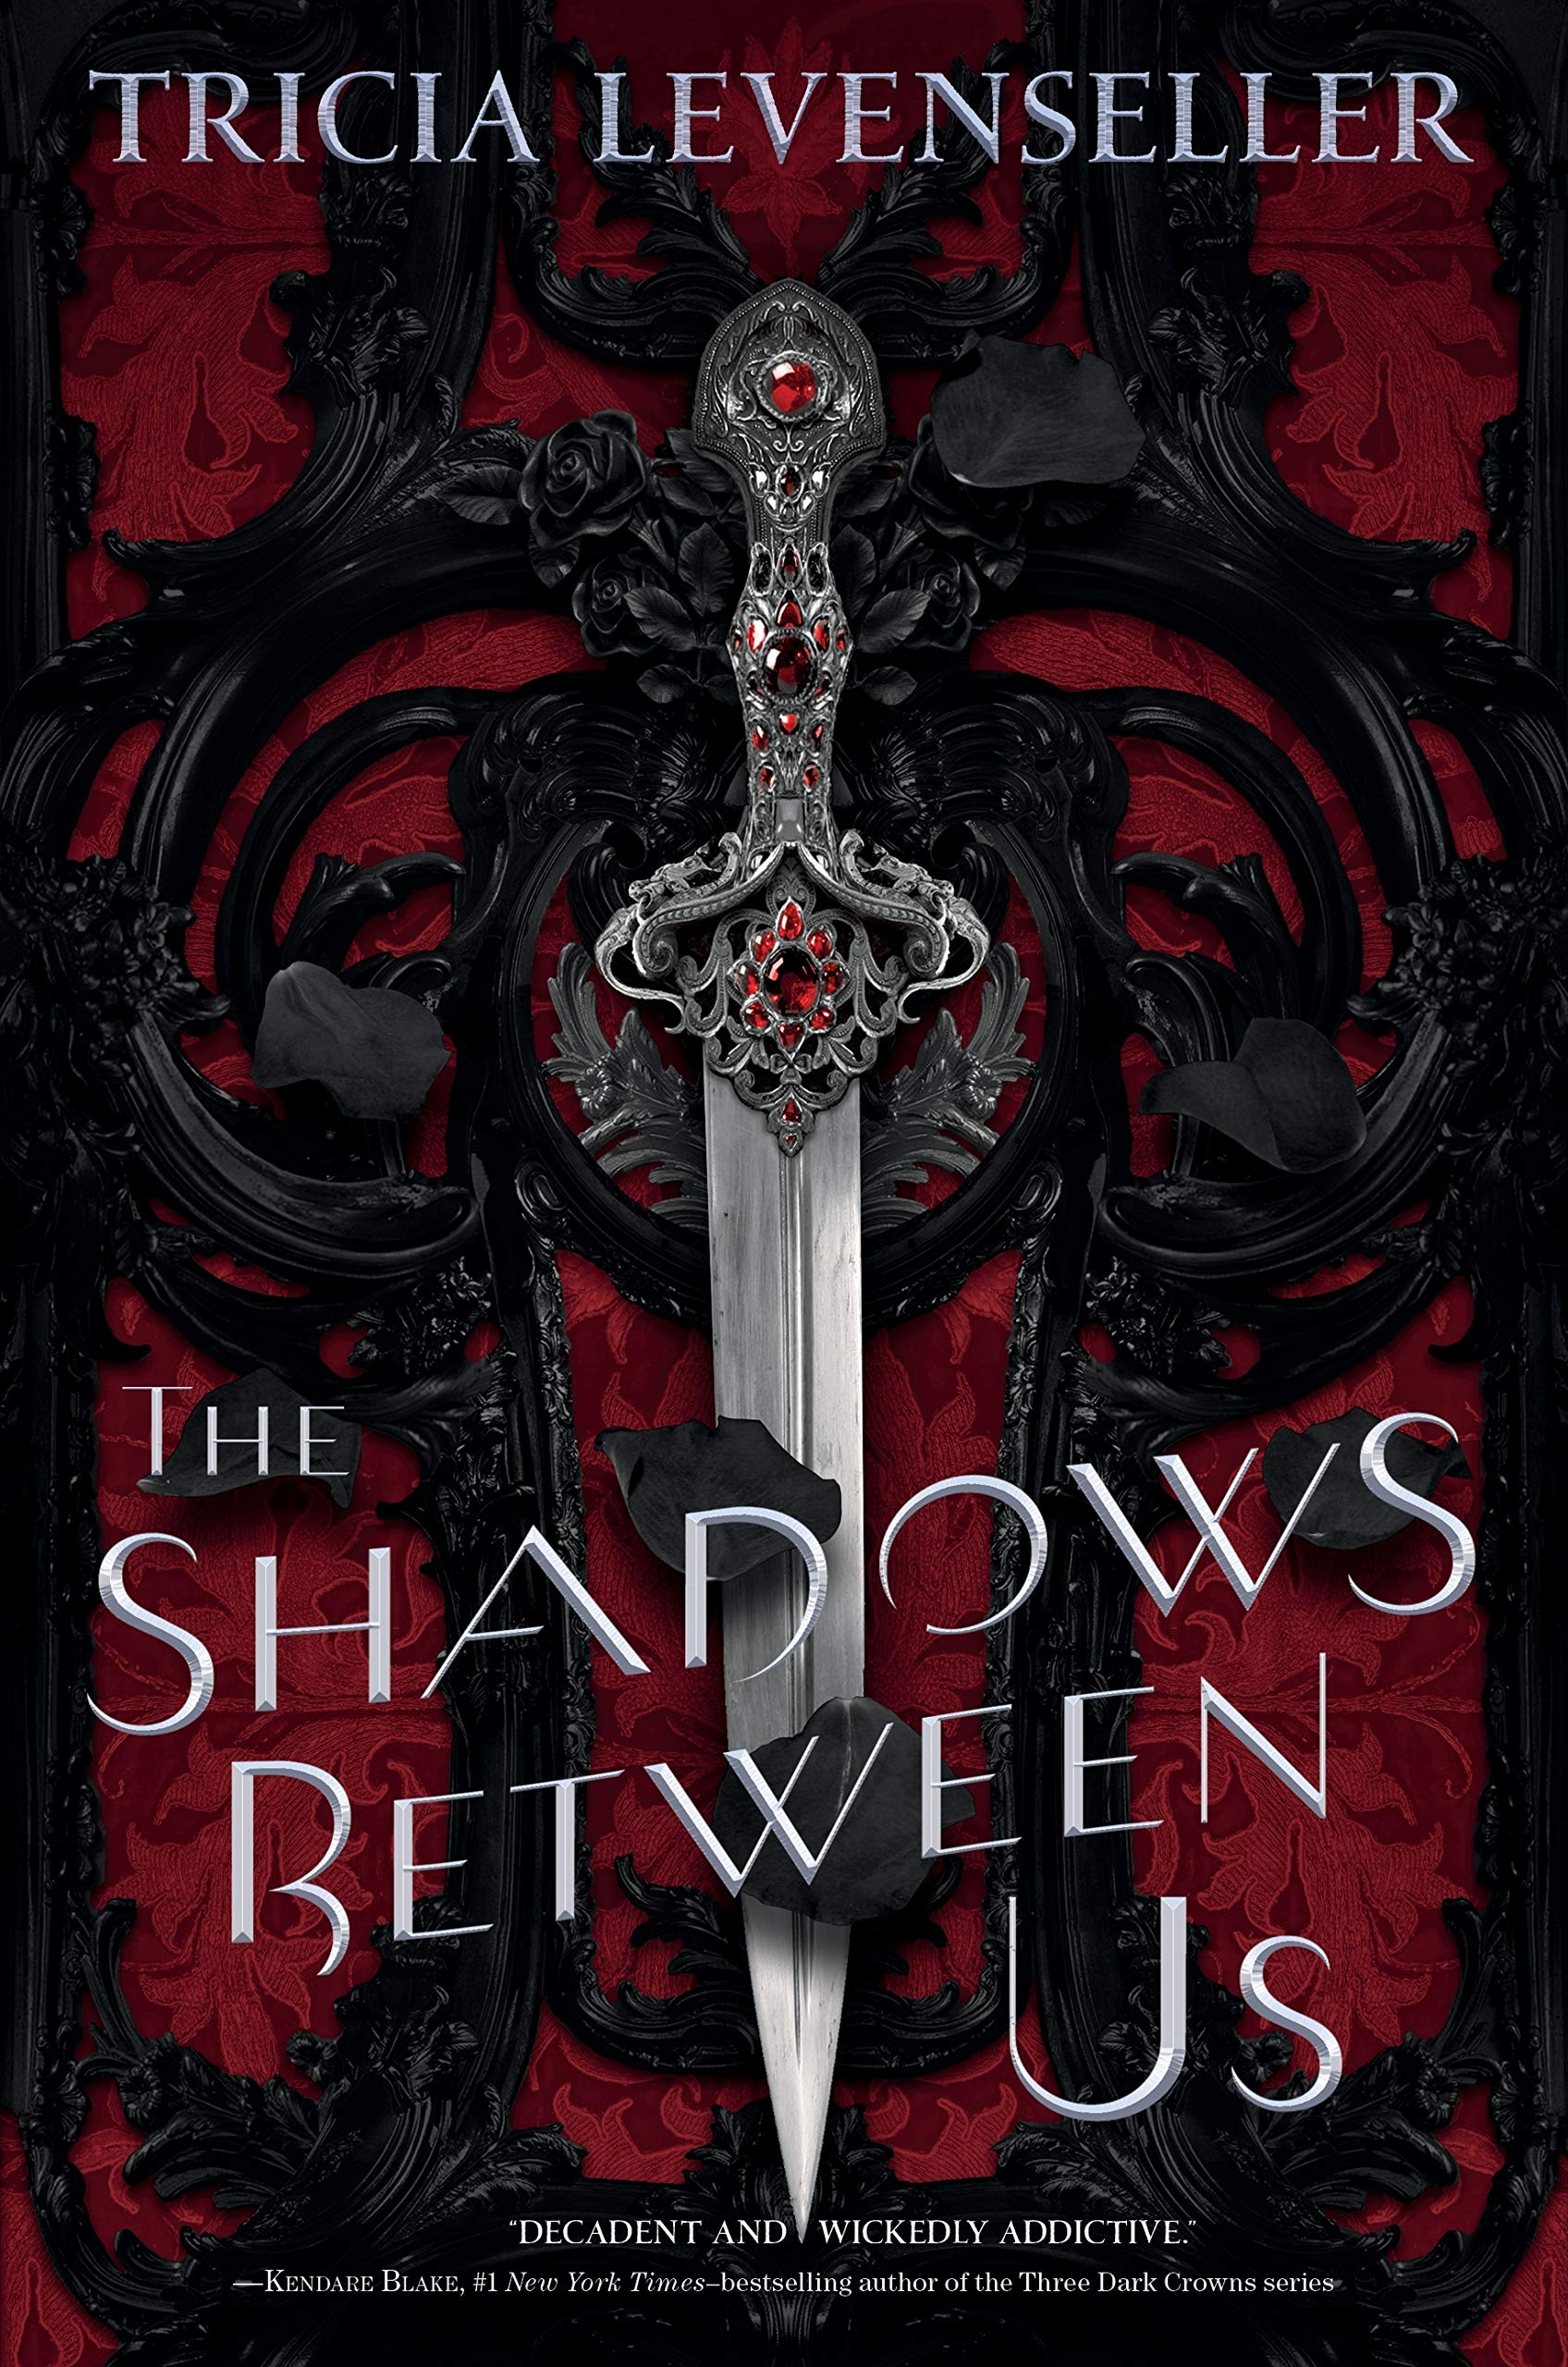 Amazon.com: The Shadows Between Us (9781250189967): Levenseller, Tricia:  Books